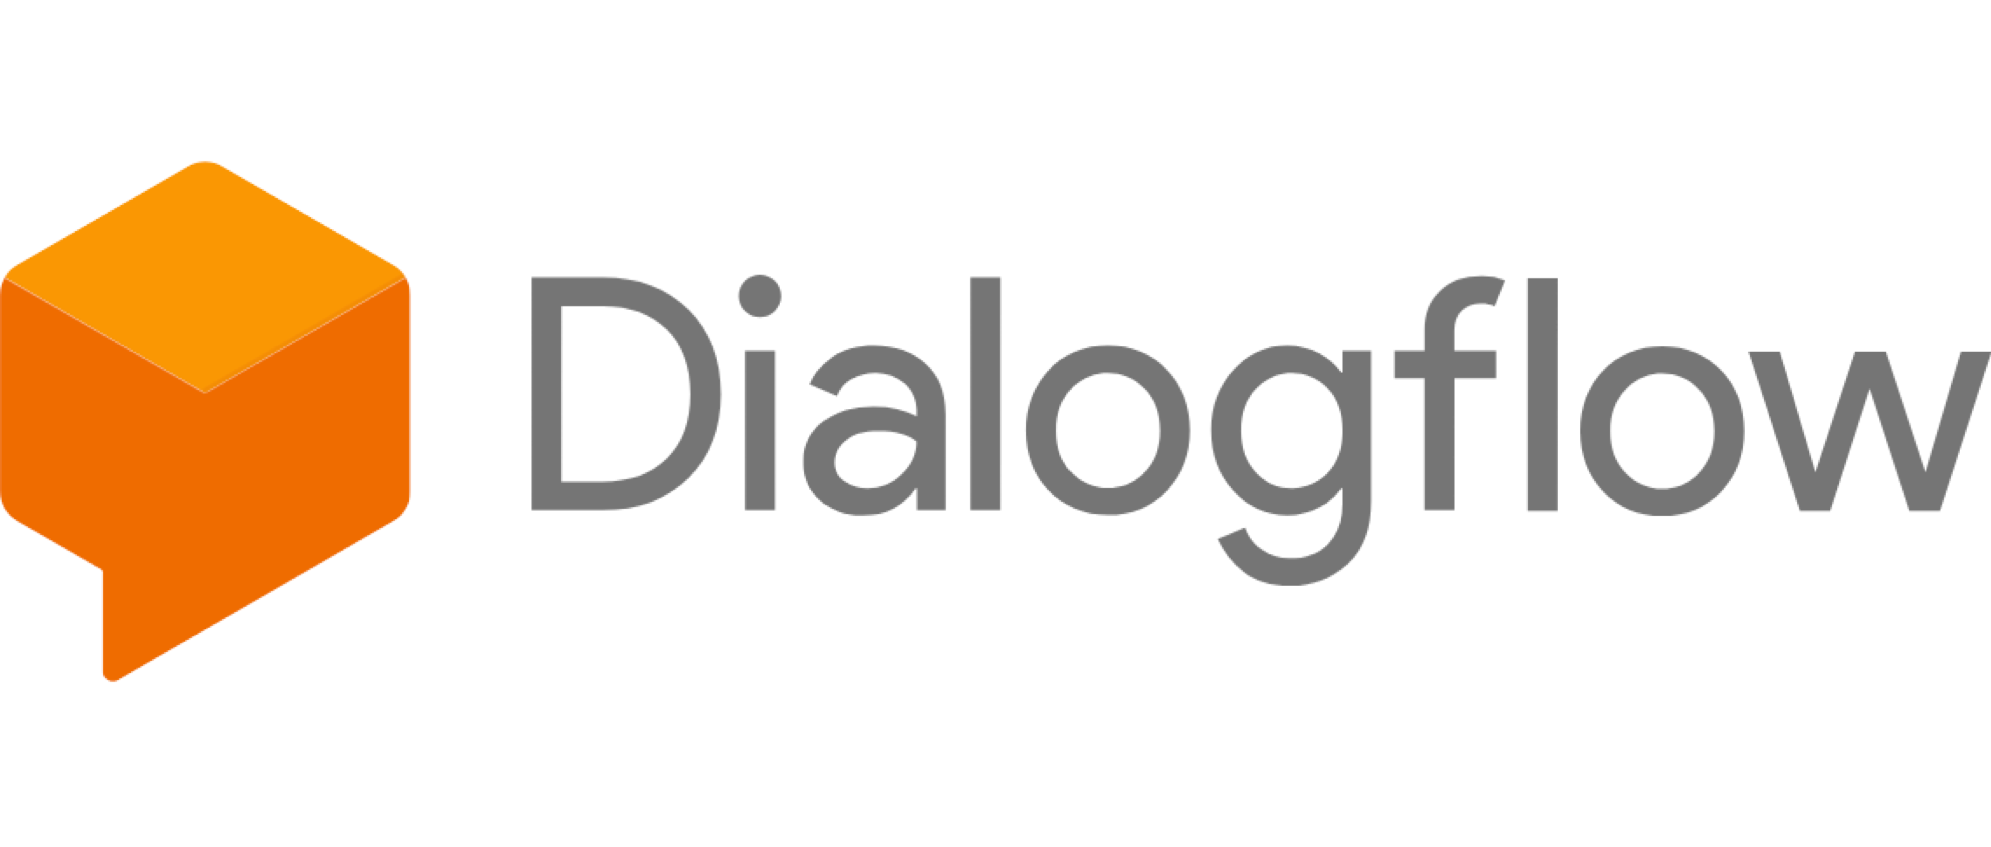 Getting started with Dialogflow and building my first bot